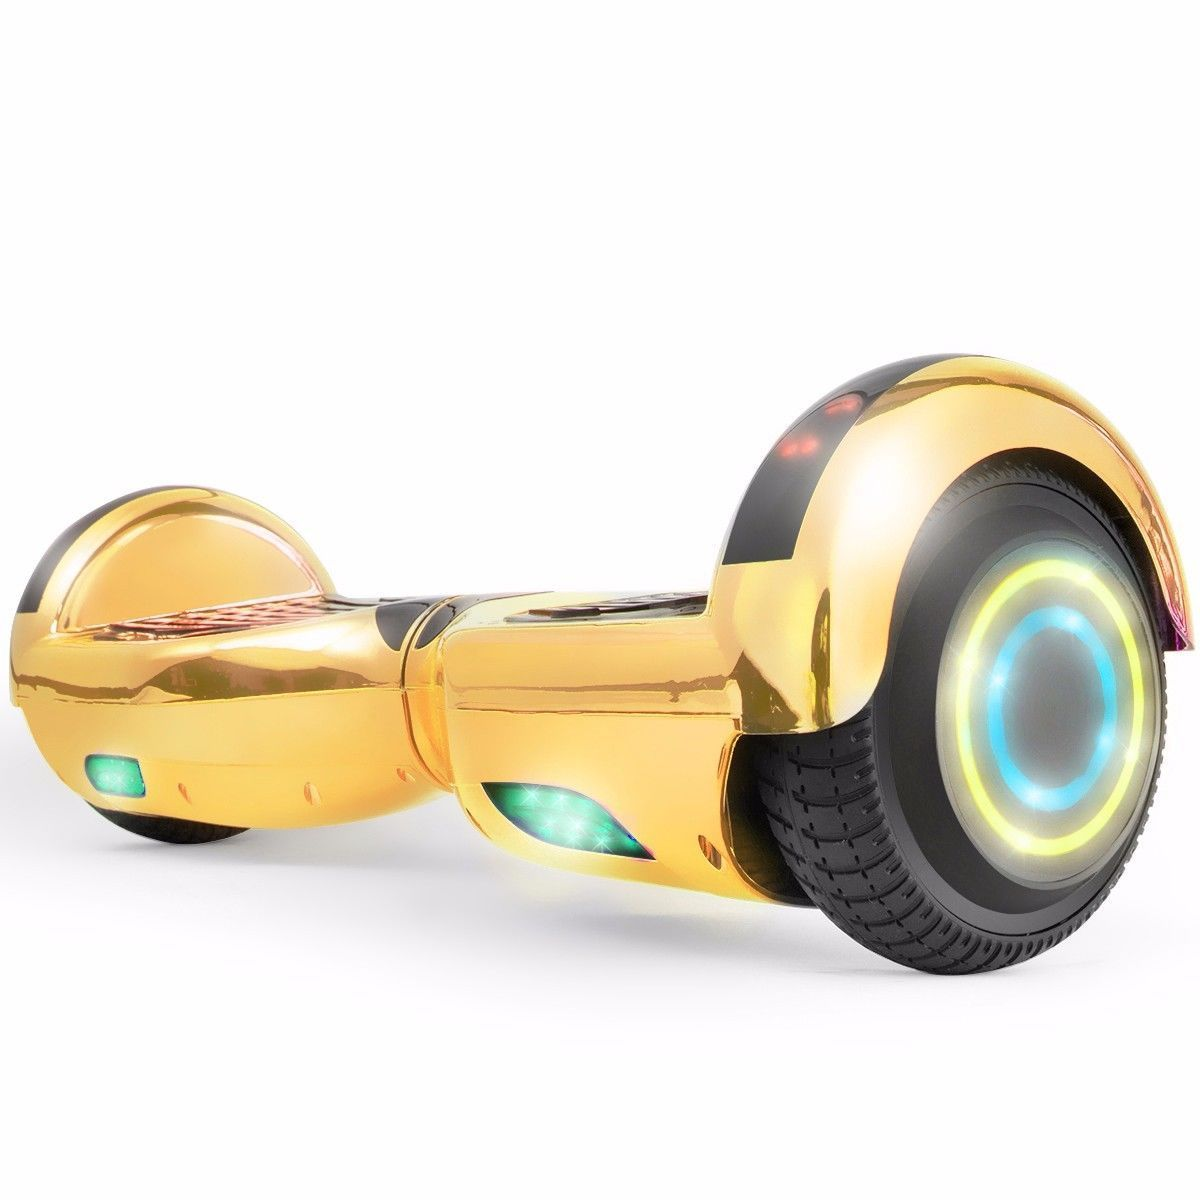 Flash Chrome Gold Bluetooth Hoverboard Two Wheel Balance Scooter UL2272